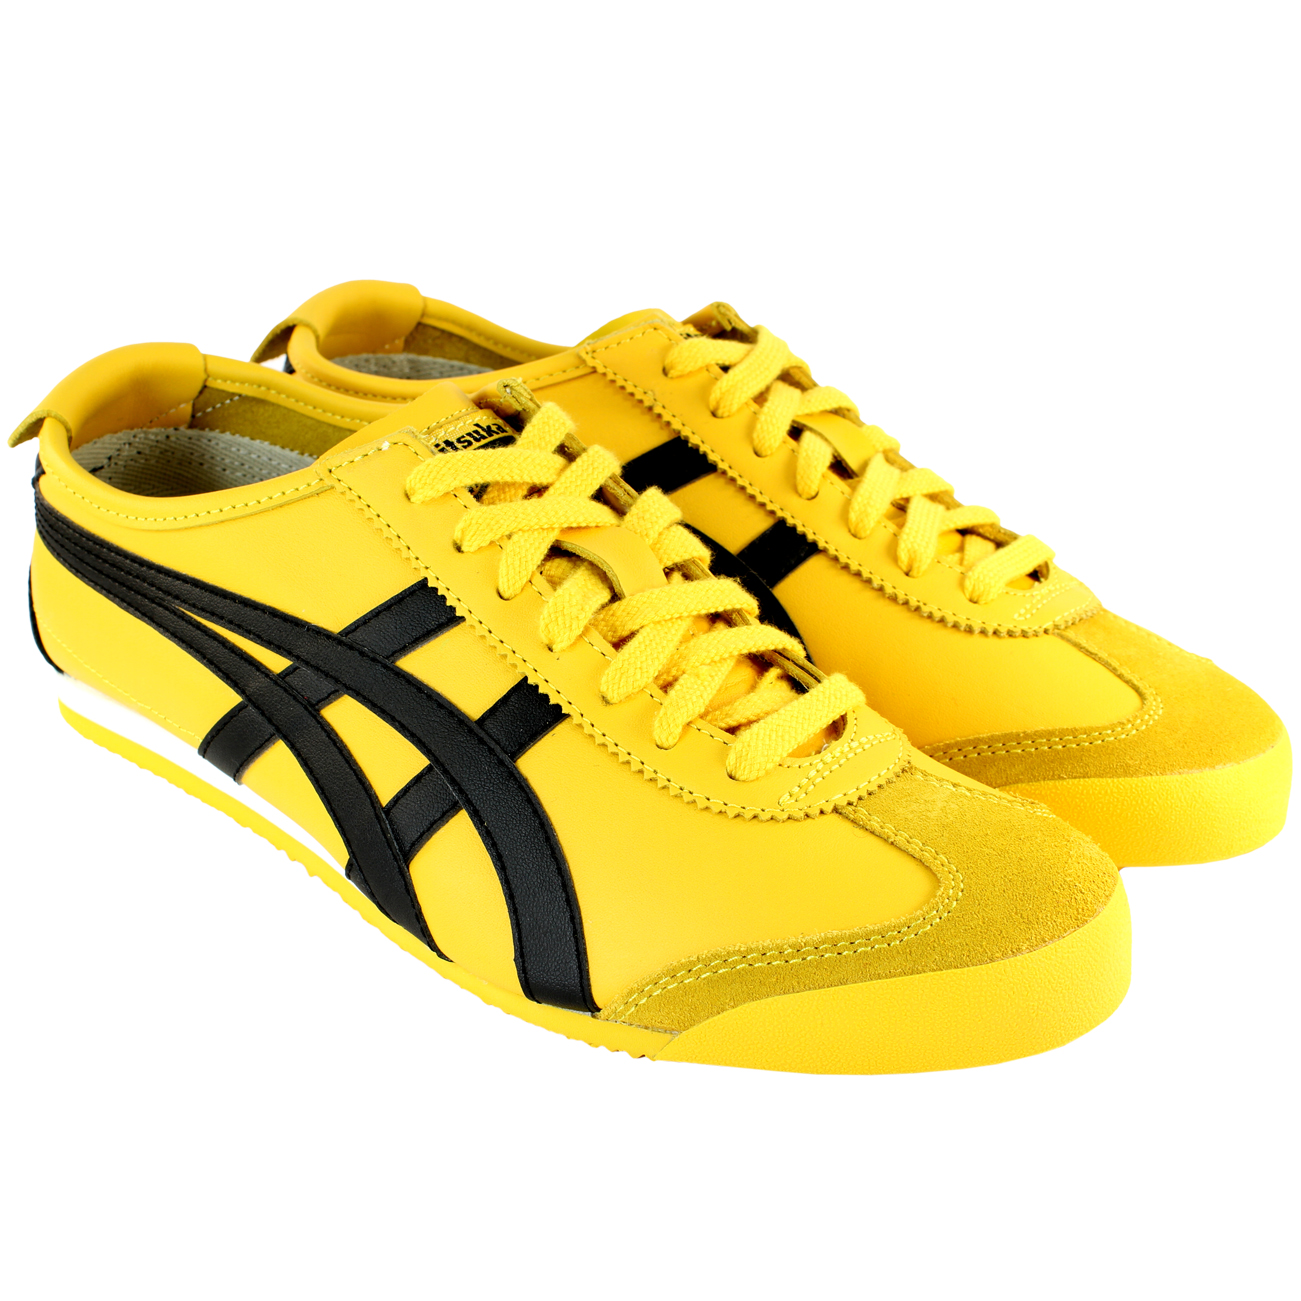 Onitsuka Tiger Mexico 66 Vintage Yellow